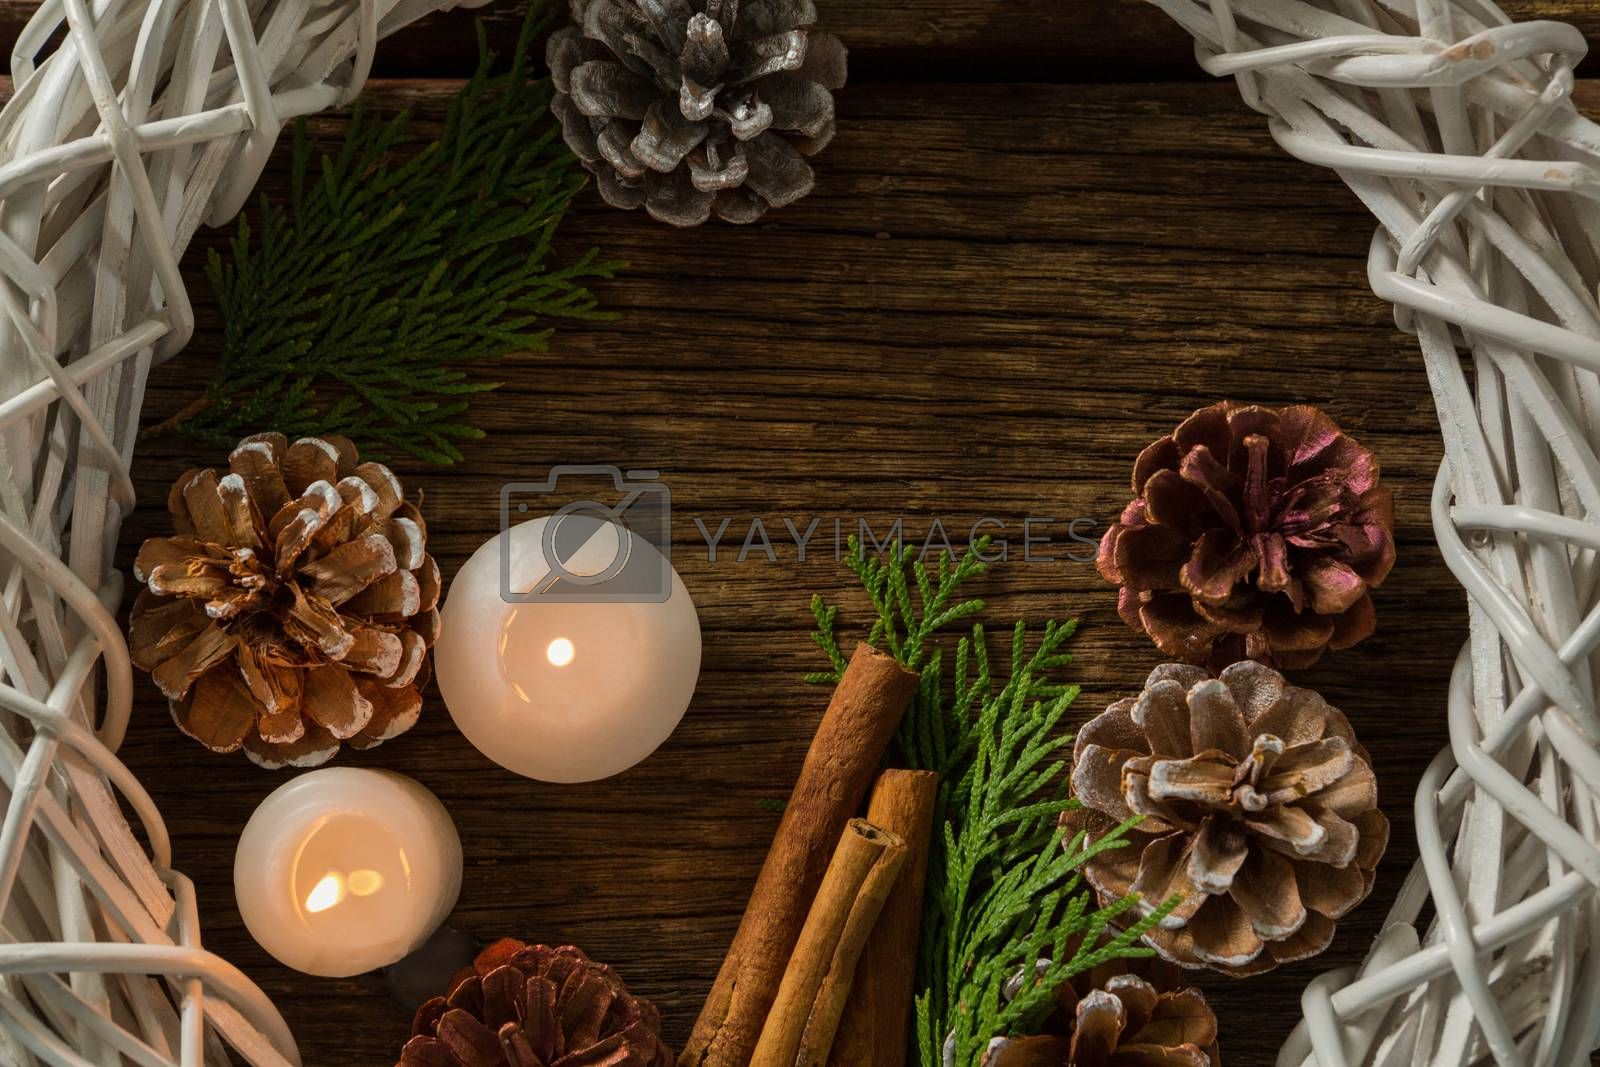 Directly above shot of pine cones with illuminated candles and wreath by Wavebreakmedia